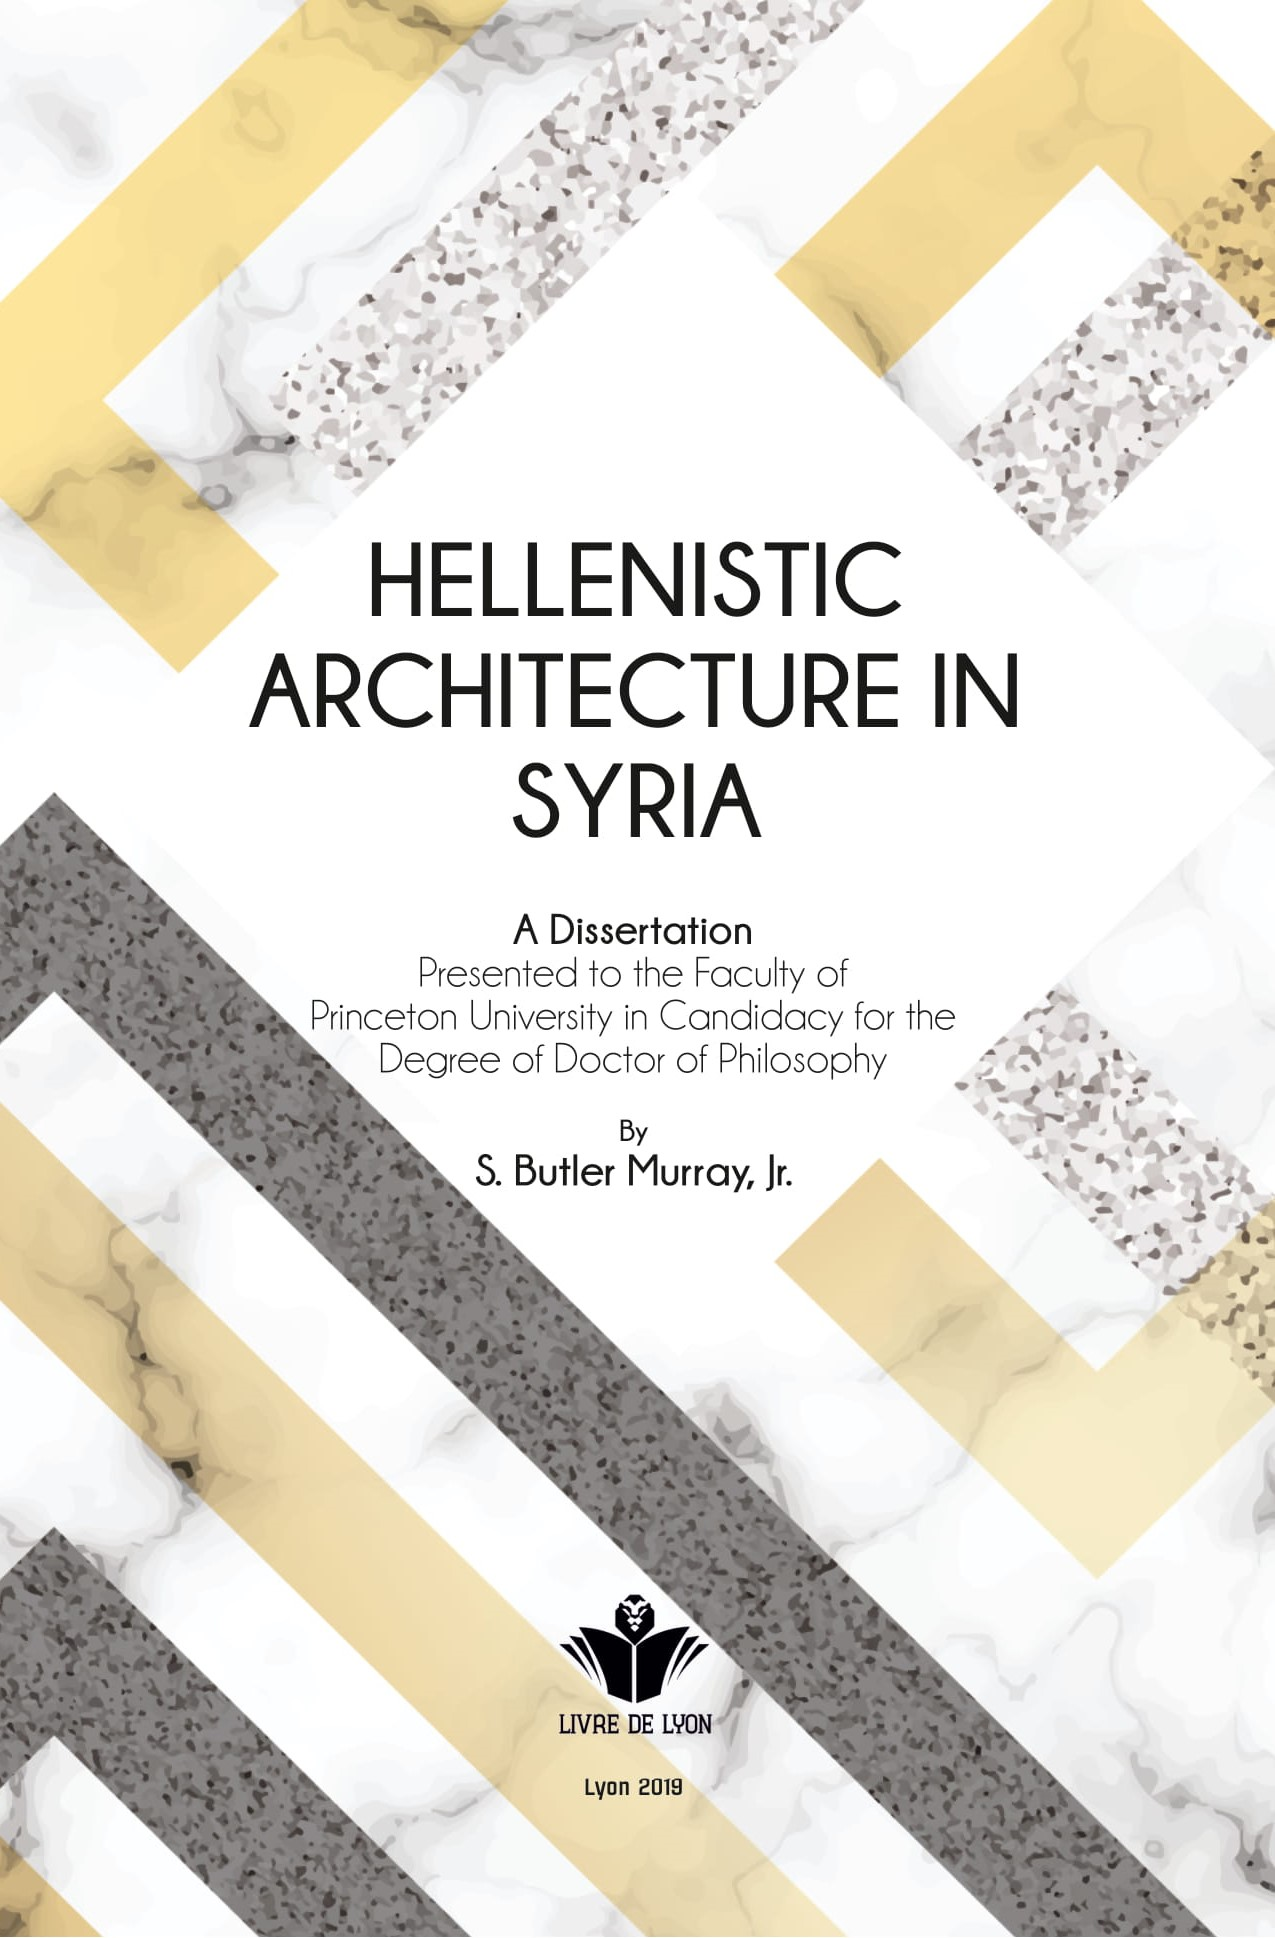 Hellenistic Architecture in Syria